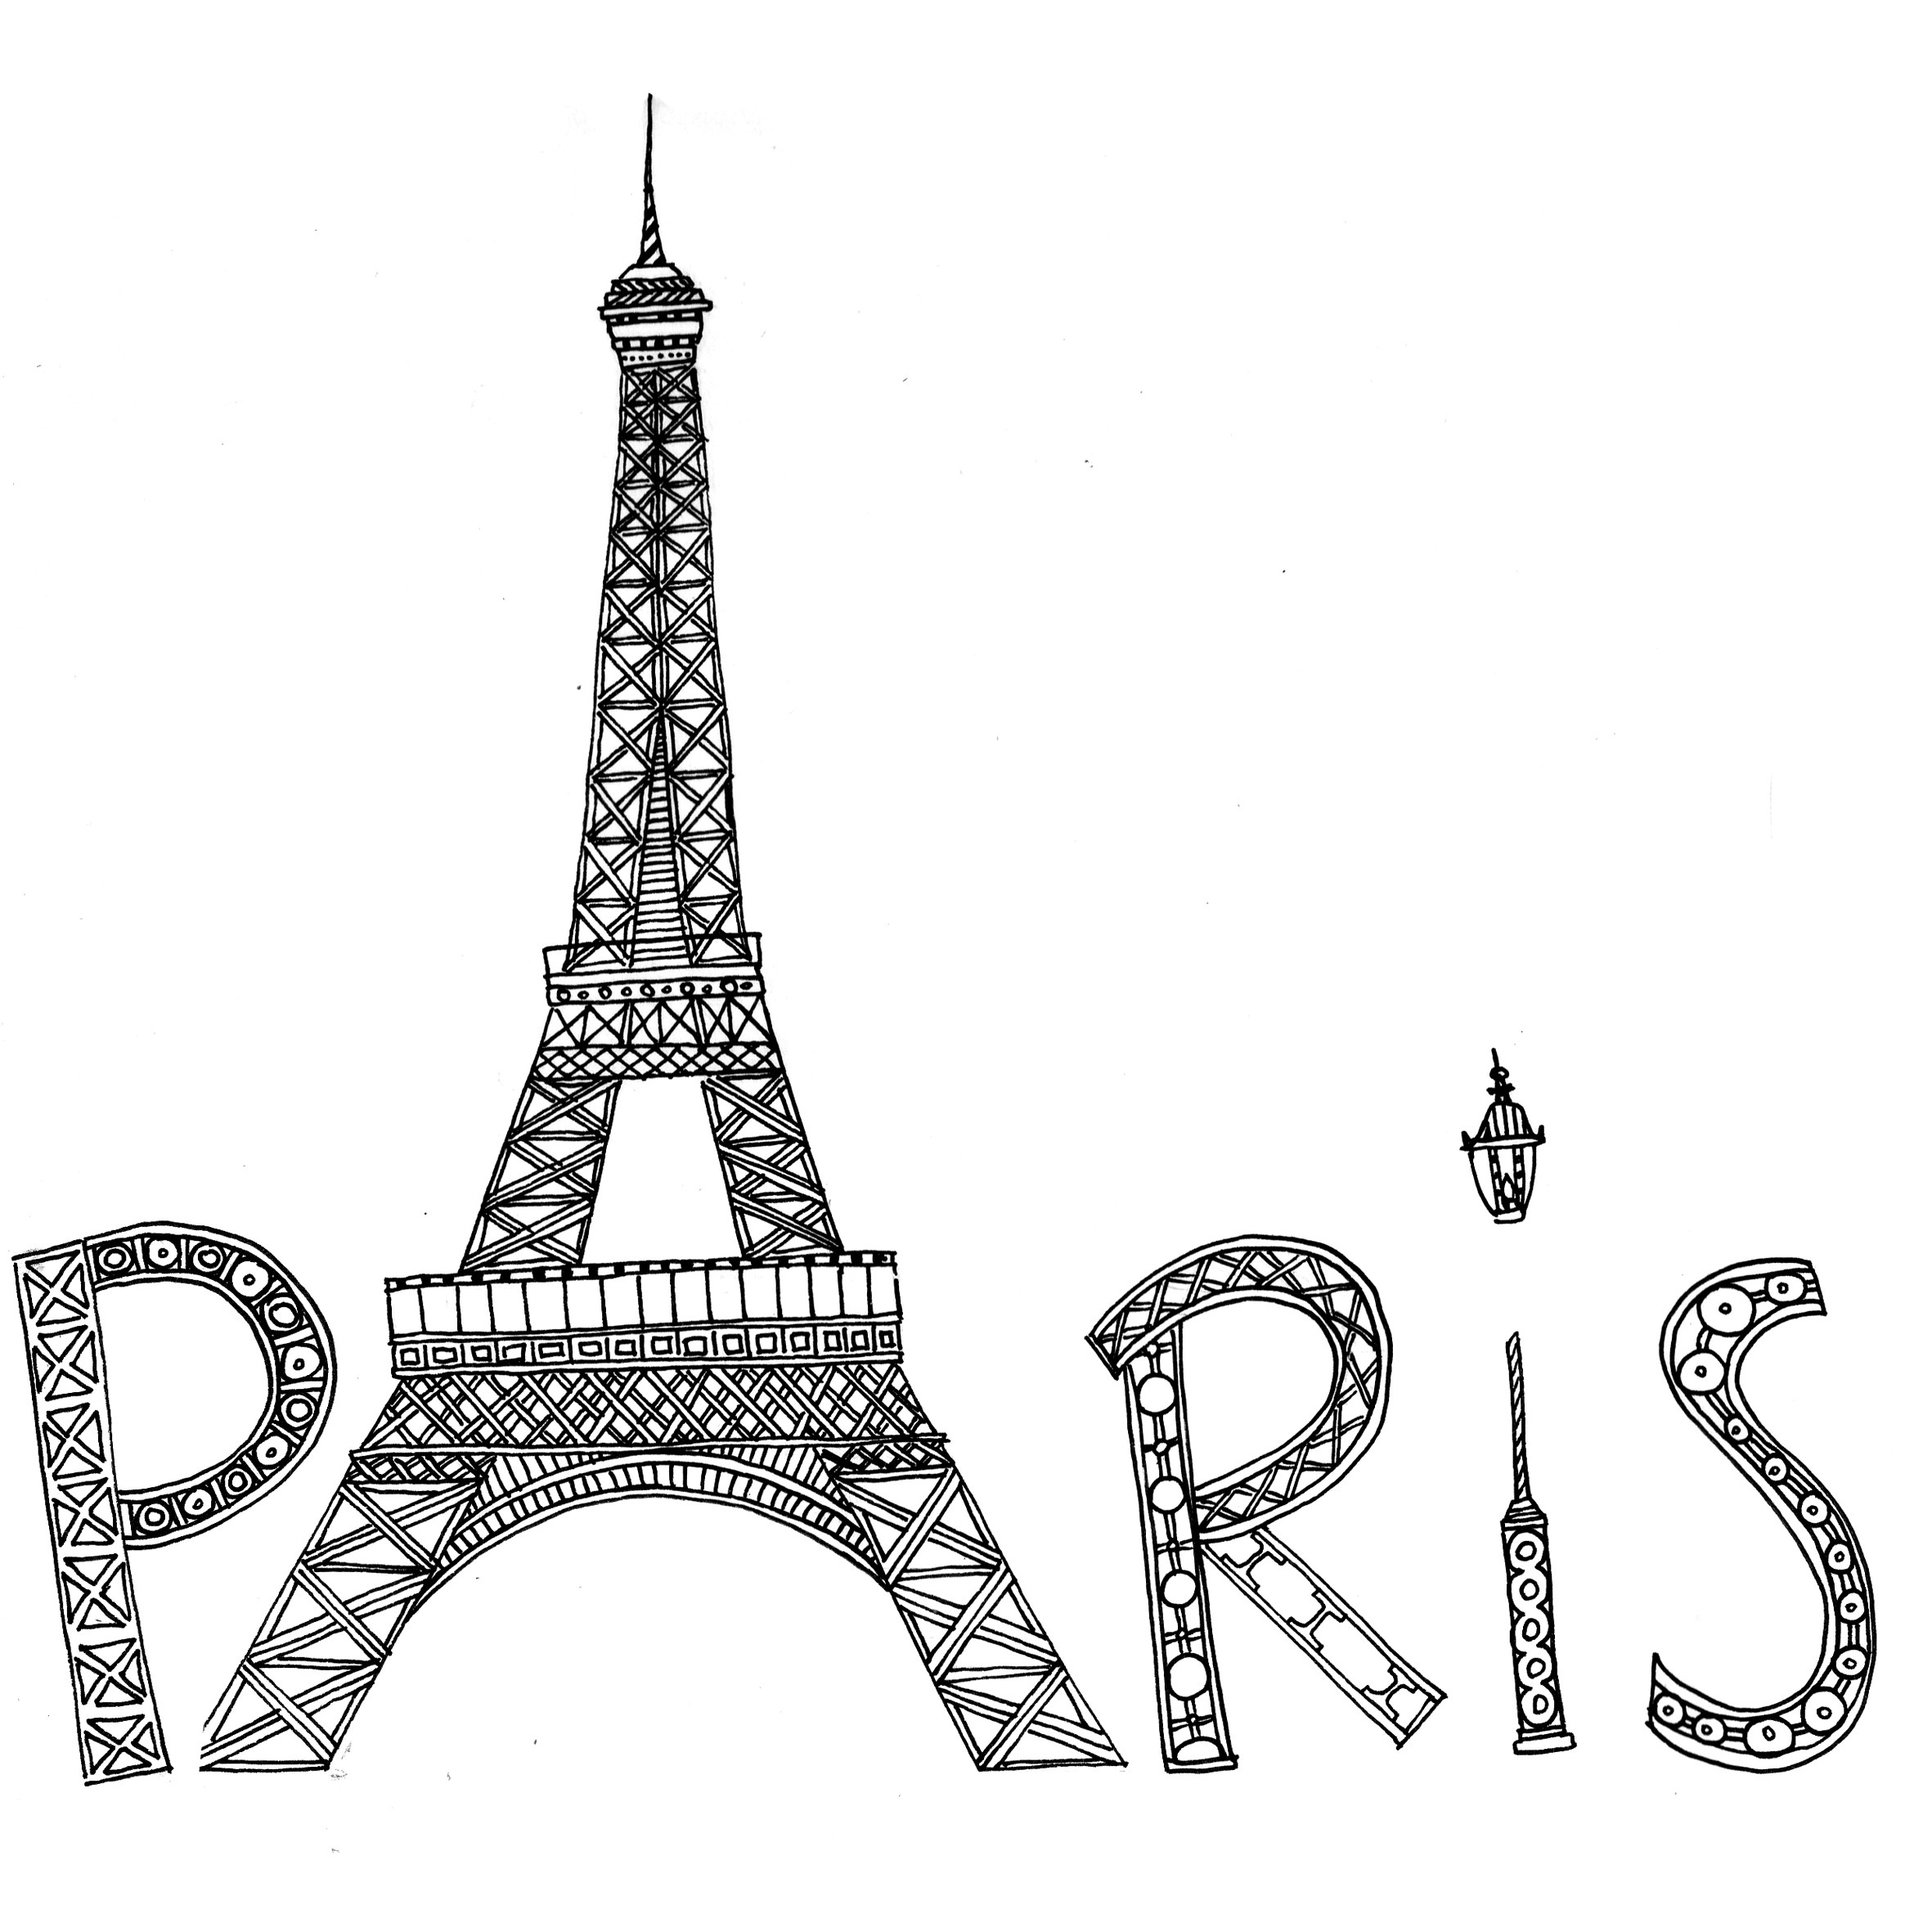 drawing of the eiffel tower download high quality eiffel tower clipart cute the eiffel tower of drawing